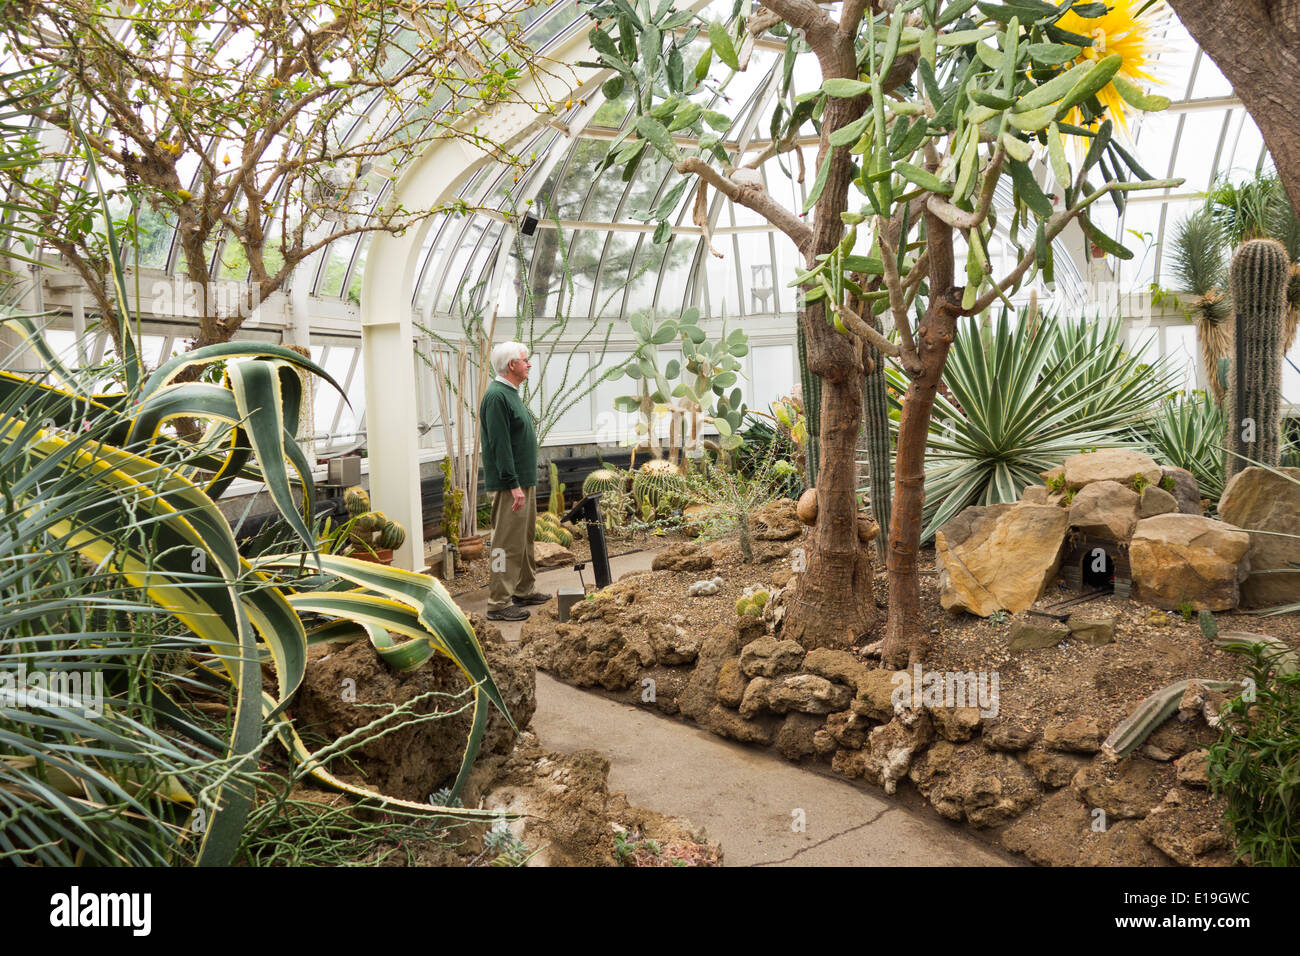 Phipps Conservatory Pittsburgh PA Stock Photo: 69666952 - Alamy